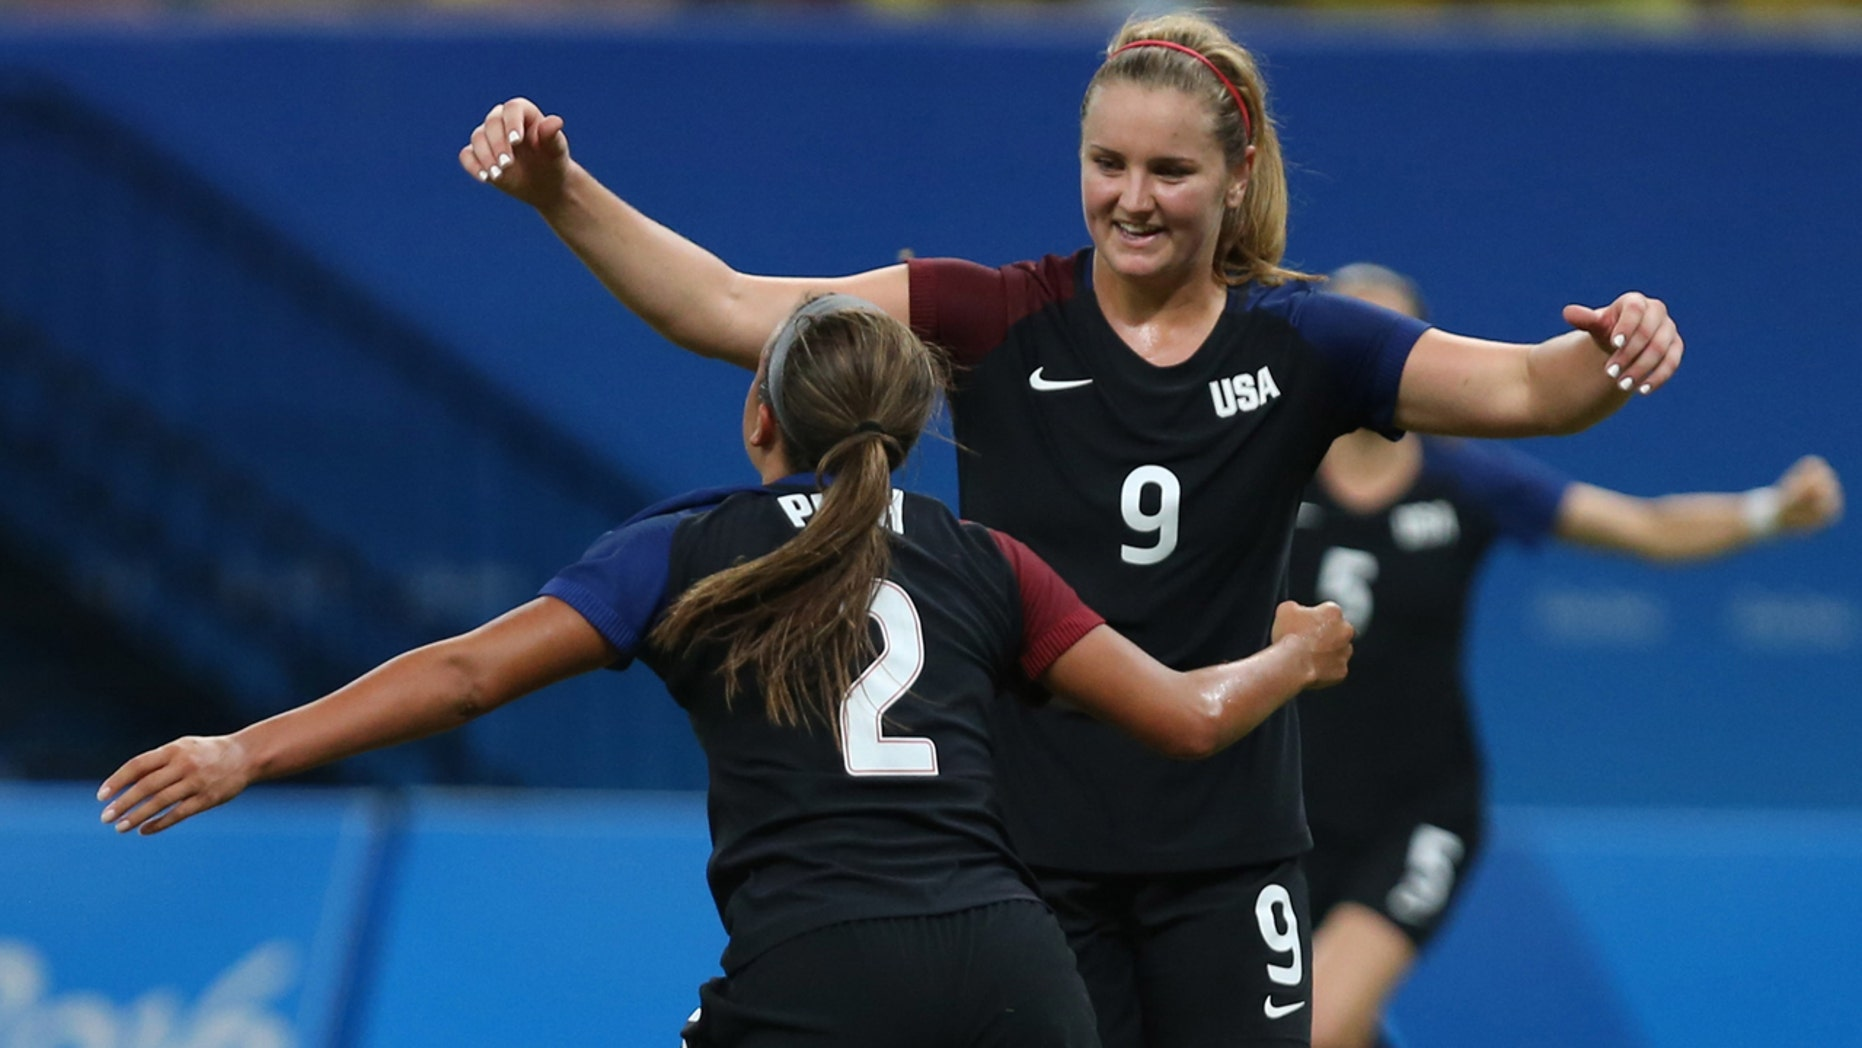 Aug. 9, 2016: United States' Mallory Pugh, left, is congratulated after scoring her side's 2nd goal by teammate Lindsey Horan during a group G match of the women's Olympic football tournament between Colombia and United States at the Arena Amazonia stadium in Manaus, Brazil.